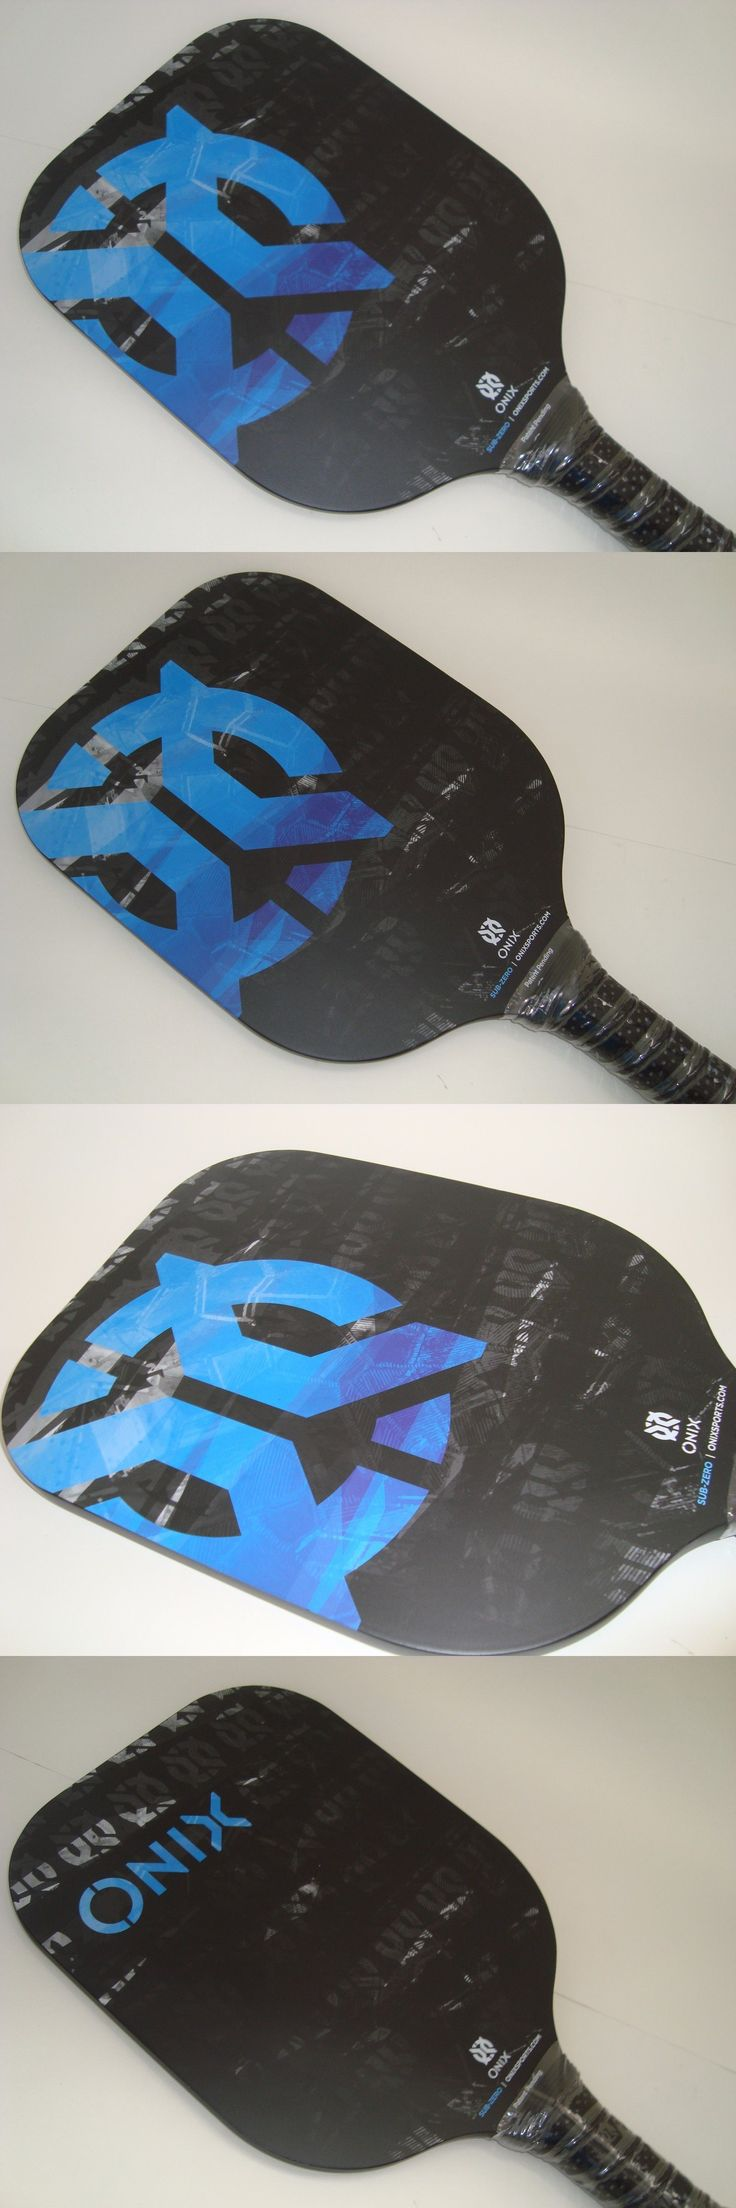 Other Tennis and Racquet Sports 159135: Super New Onix Sub-Zero Pickleball Paddle Black Light Strong Carbon Fiber Black -> BUY IT NOW ONLY: $109.99 on eBay!